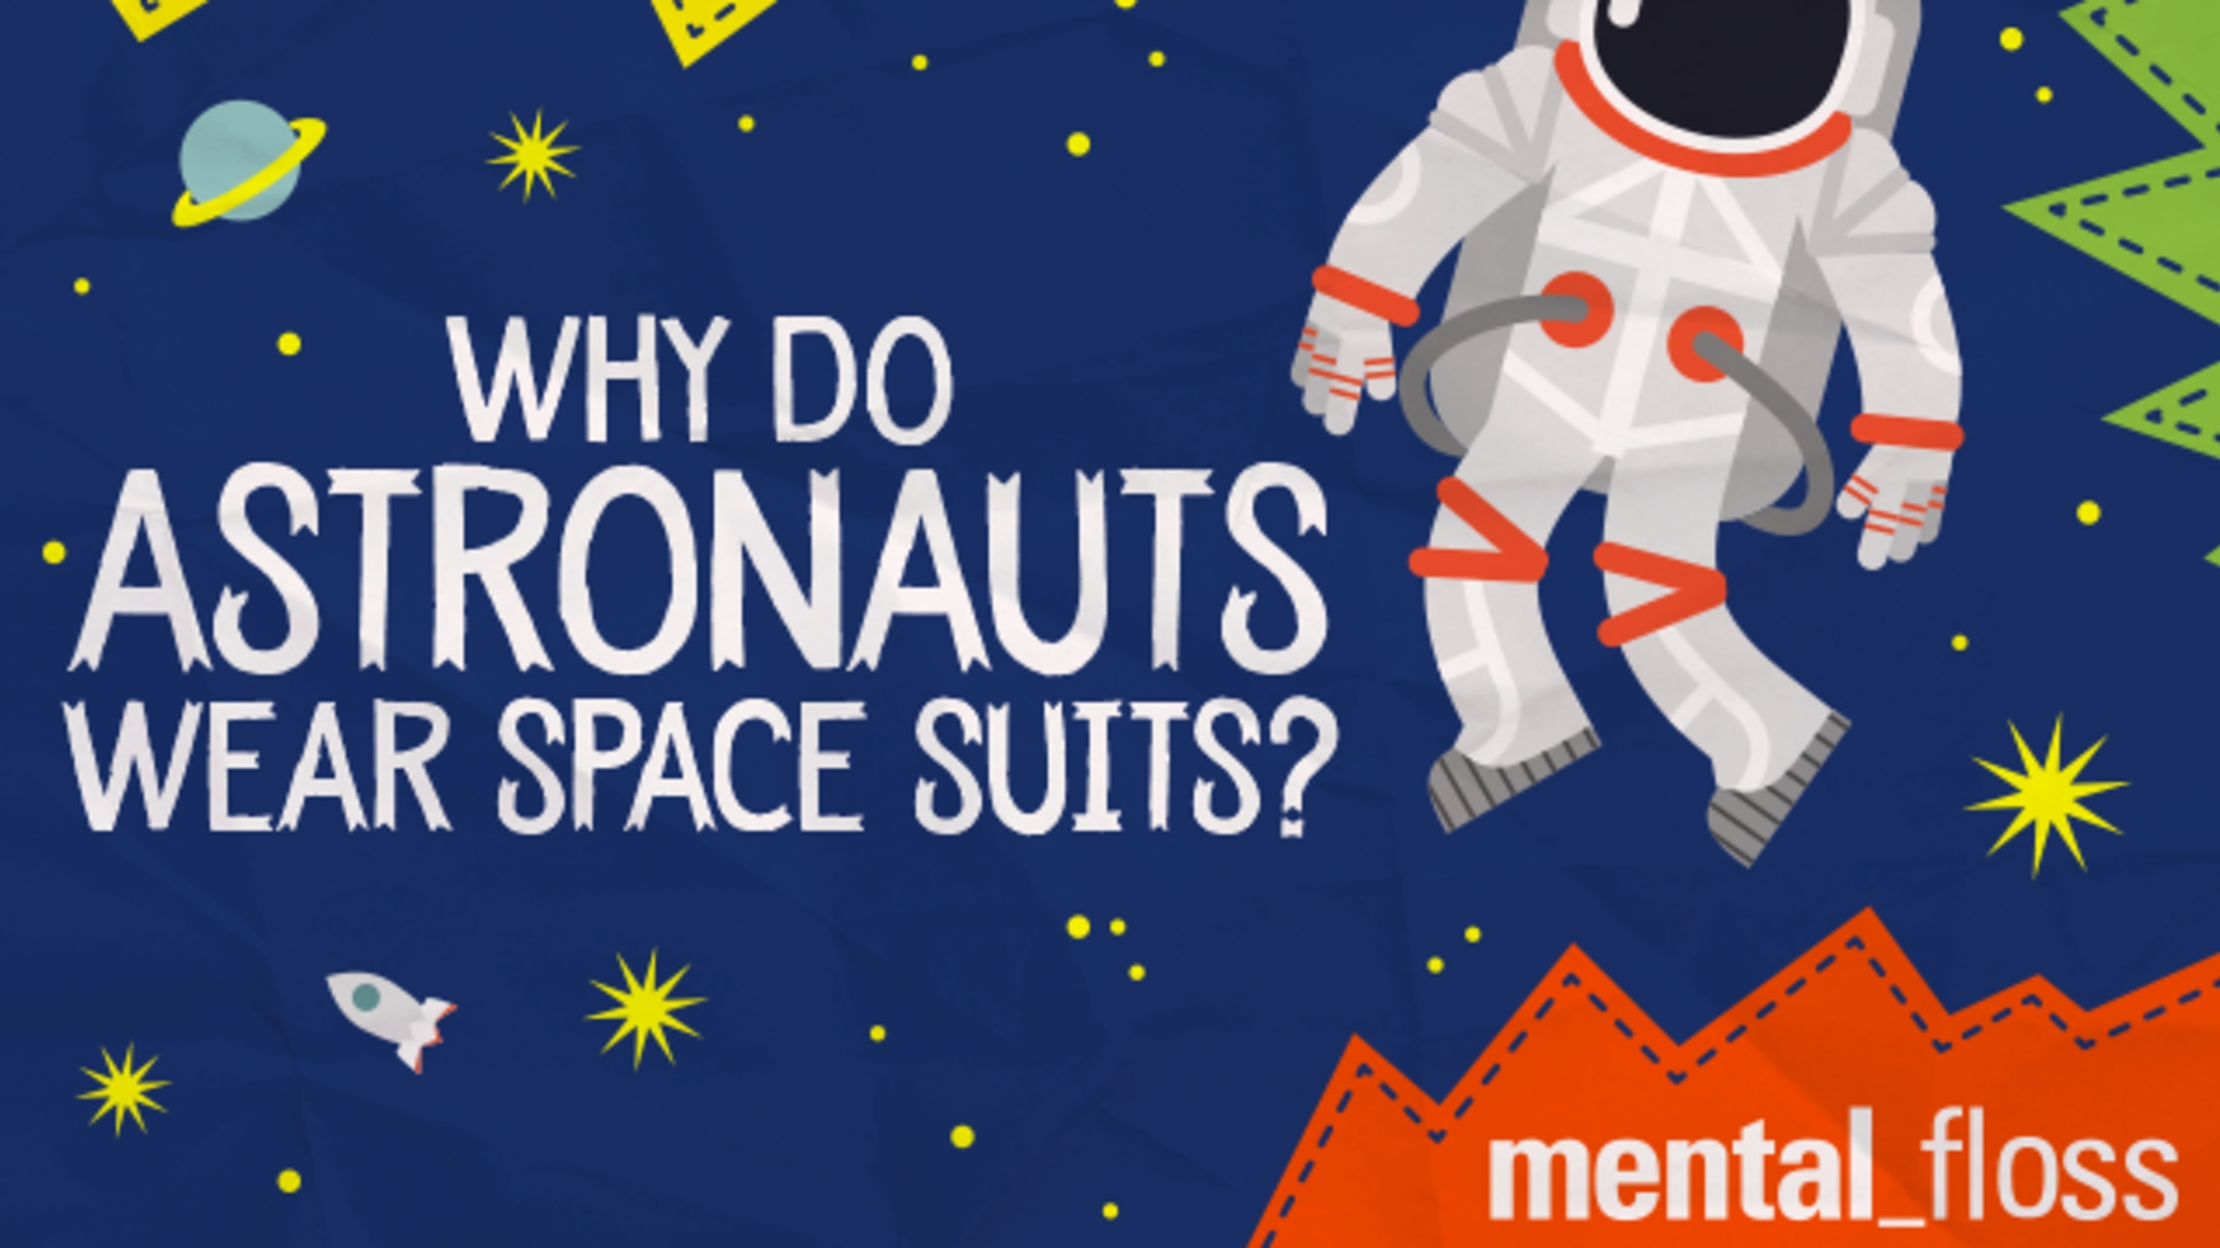 Why Do Astronauts Wear Space Suits? | Mental Floss